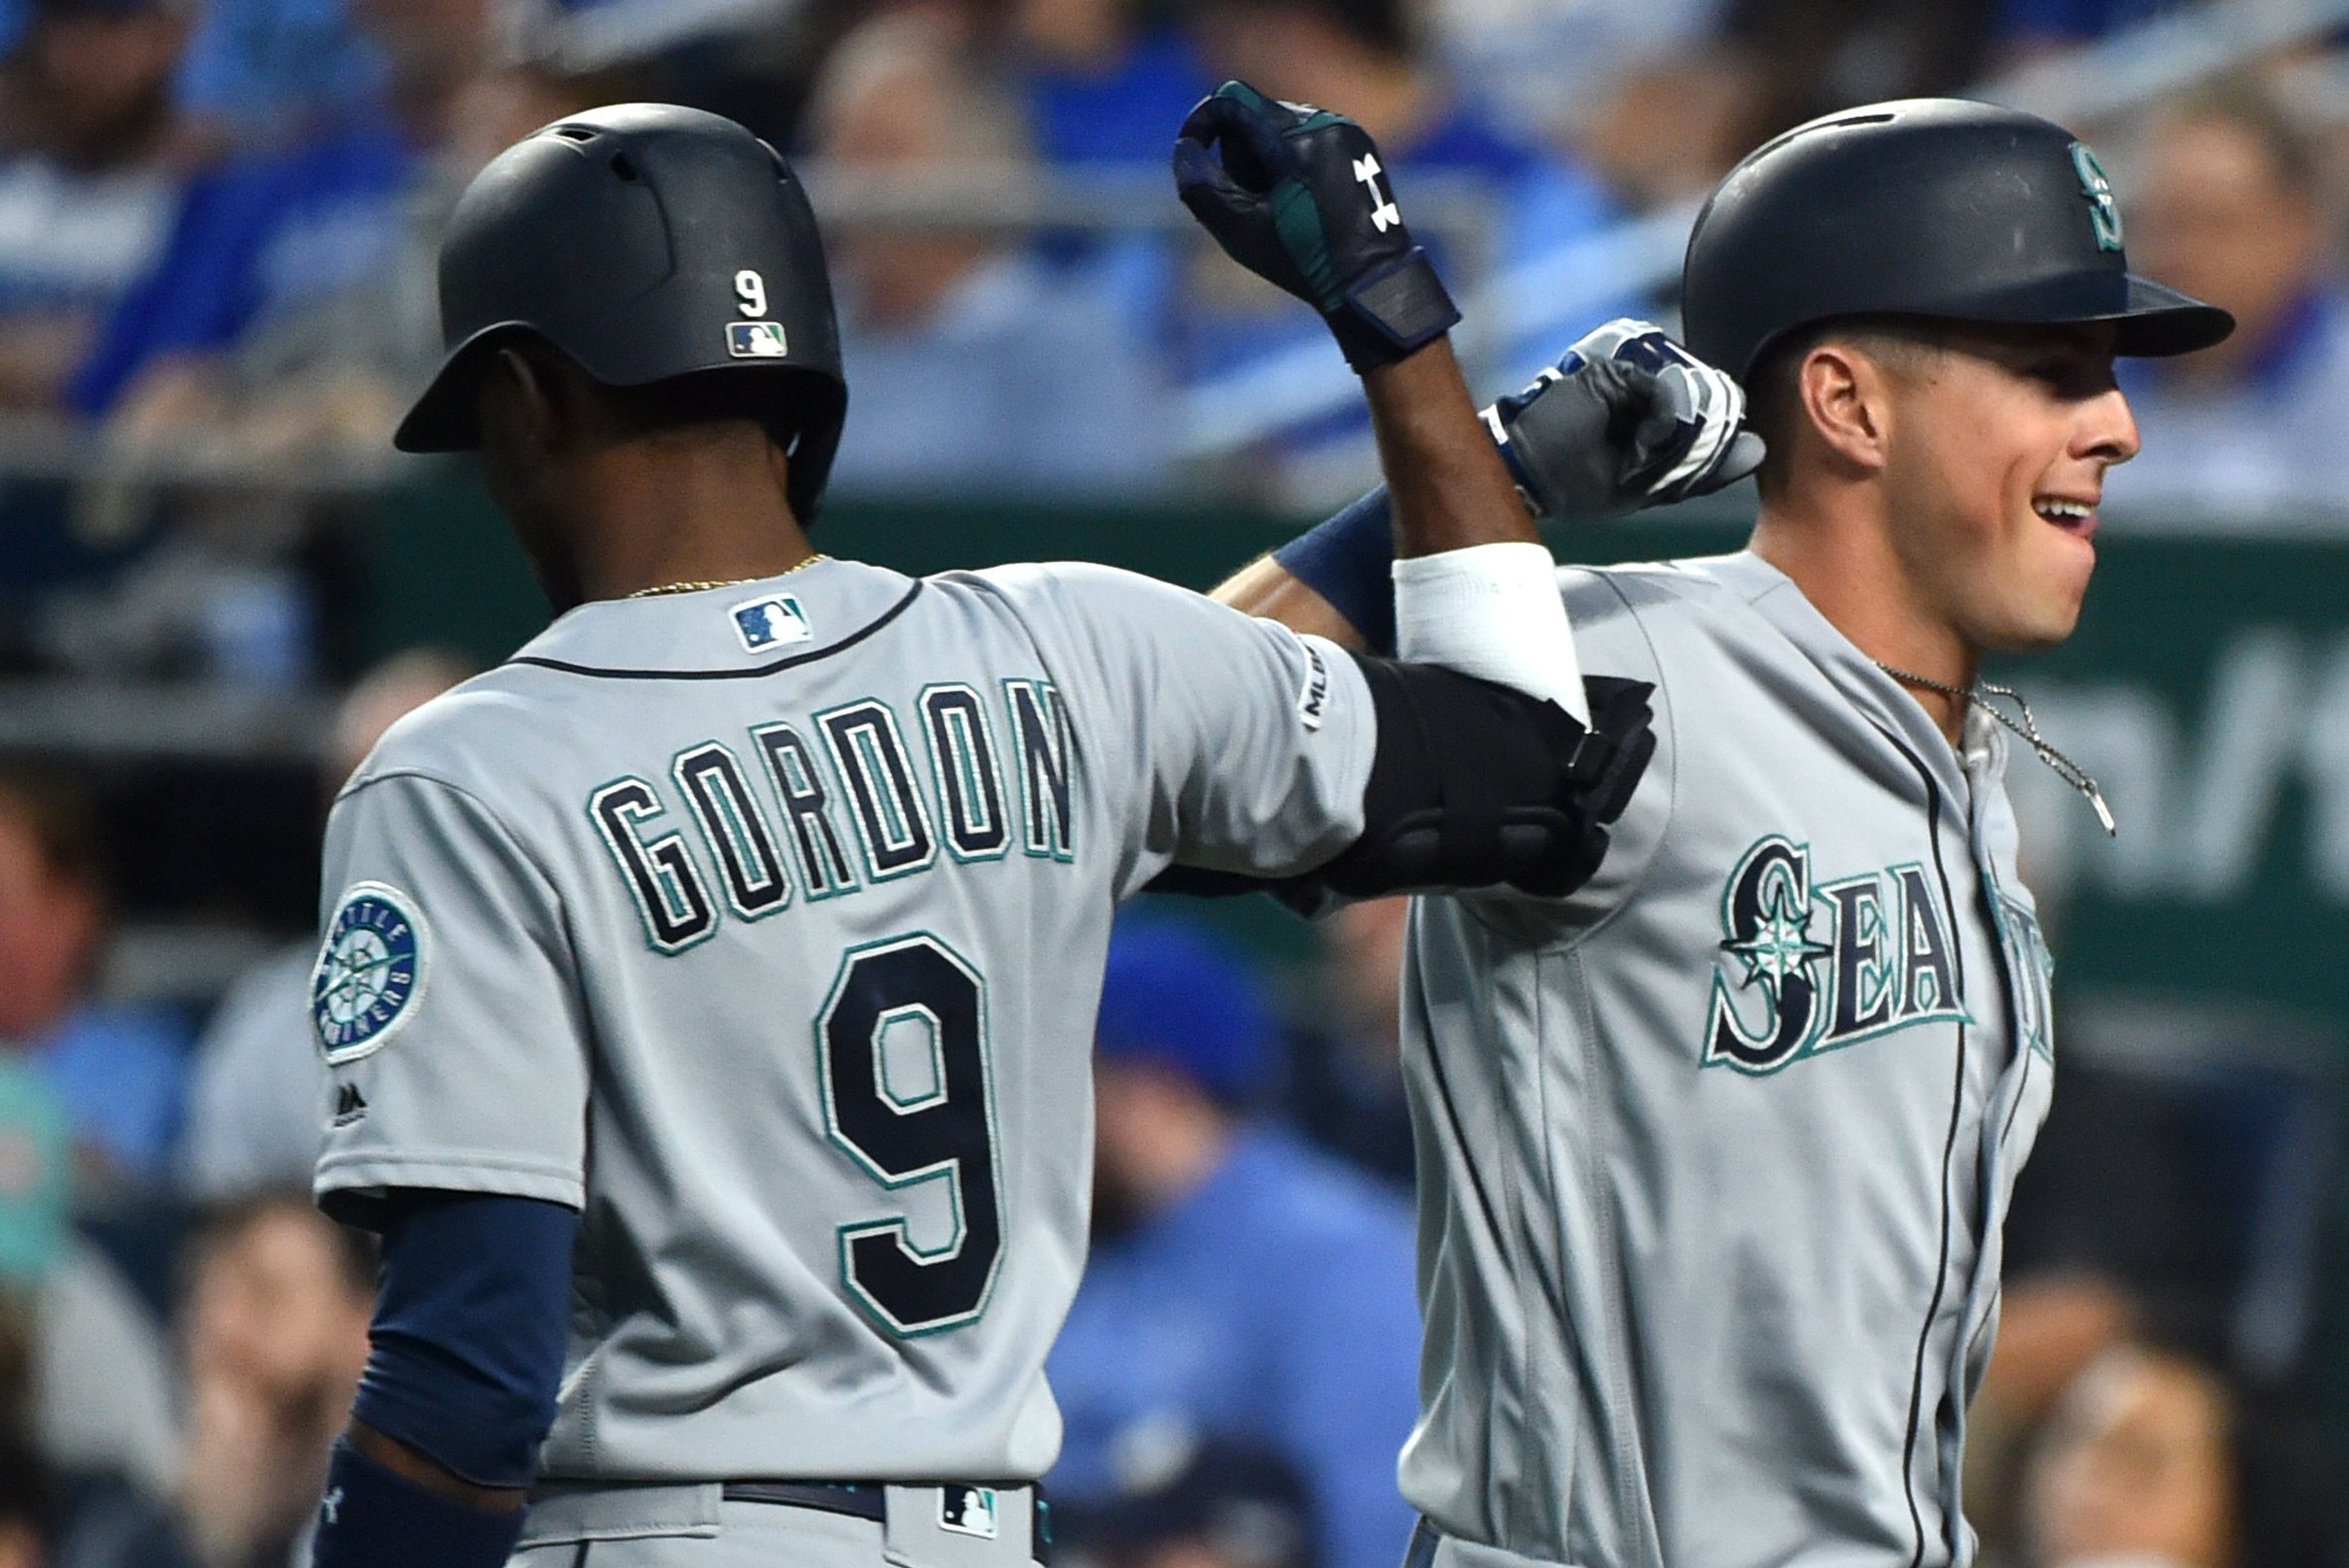 Seattle Mariners home run record